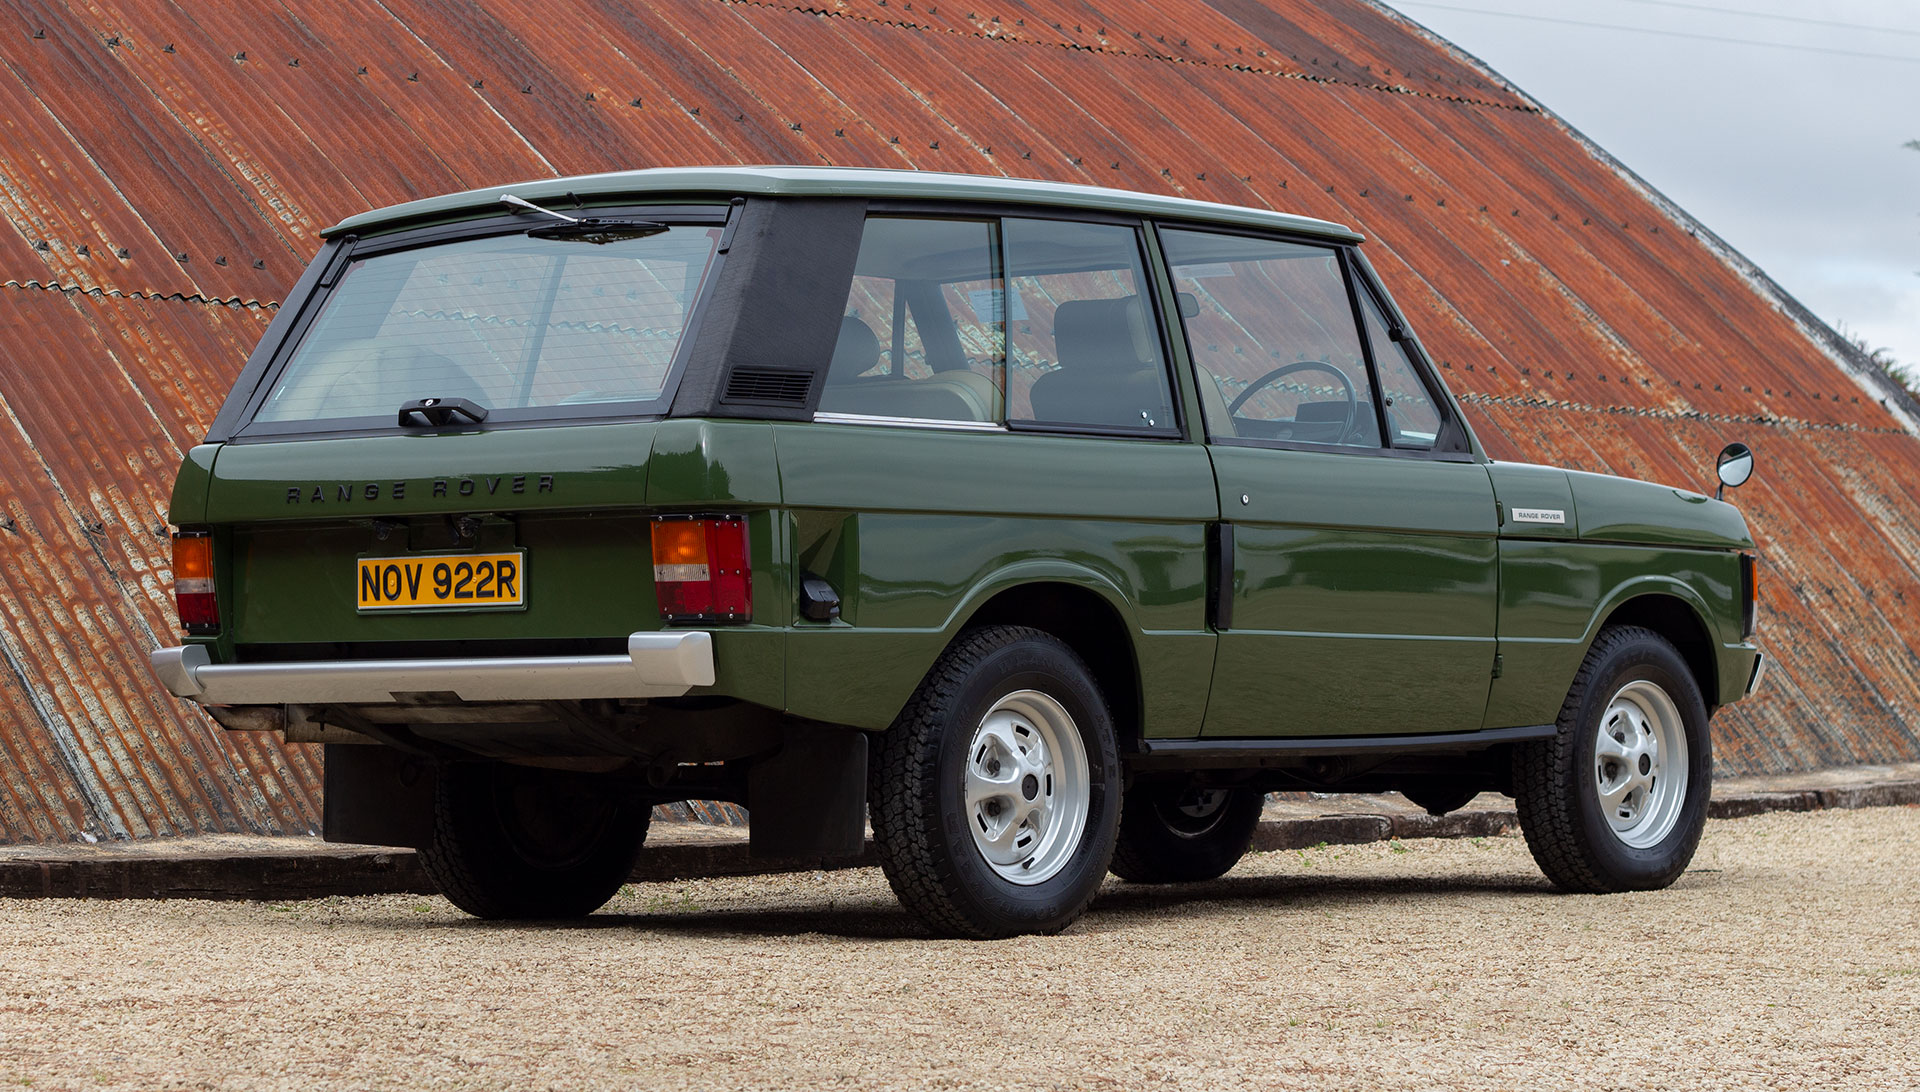 1976 Range Rover Suffix D S1 For Sale at The Classic Motor Hub